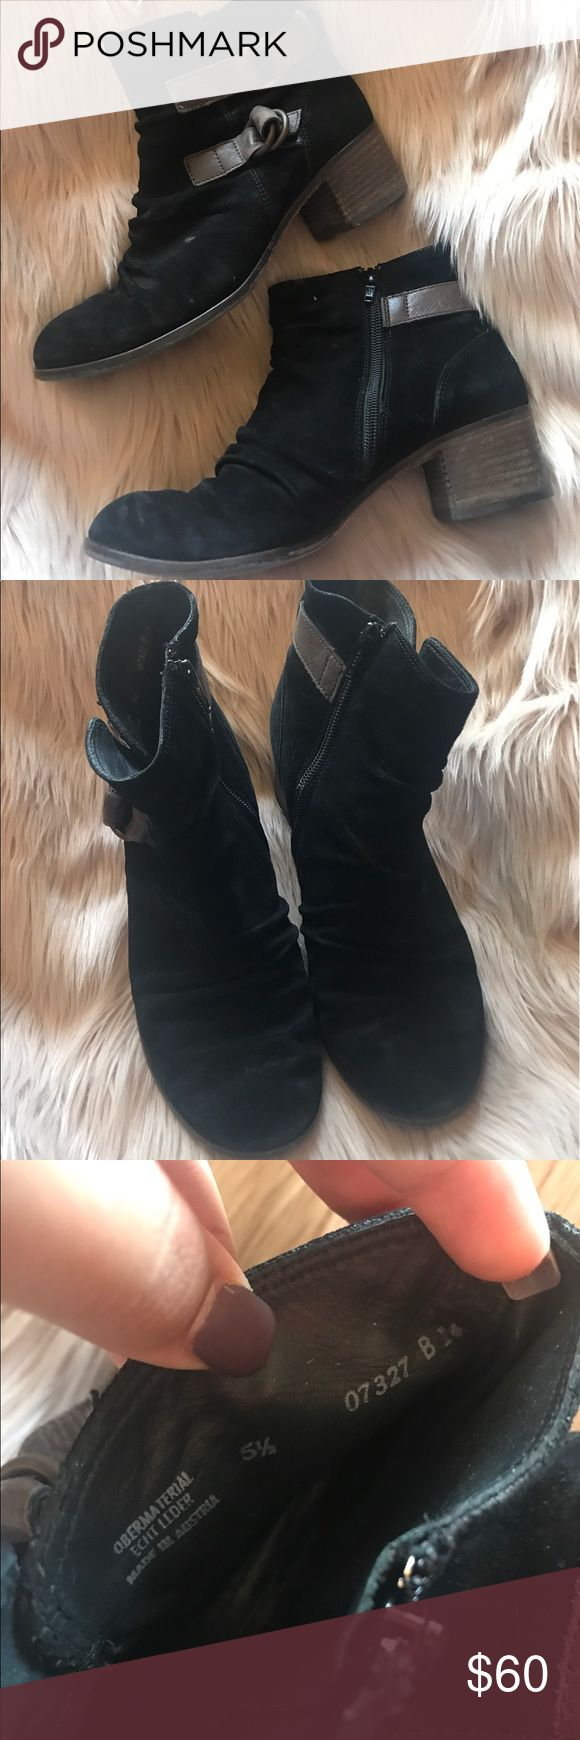 paul green munchen booties UK sizd 51/2 is a women's 8. good condition/ genuine leather Paul Green Shoes Ankle Boots & Booties